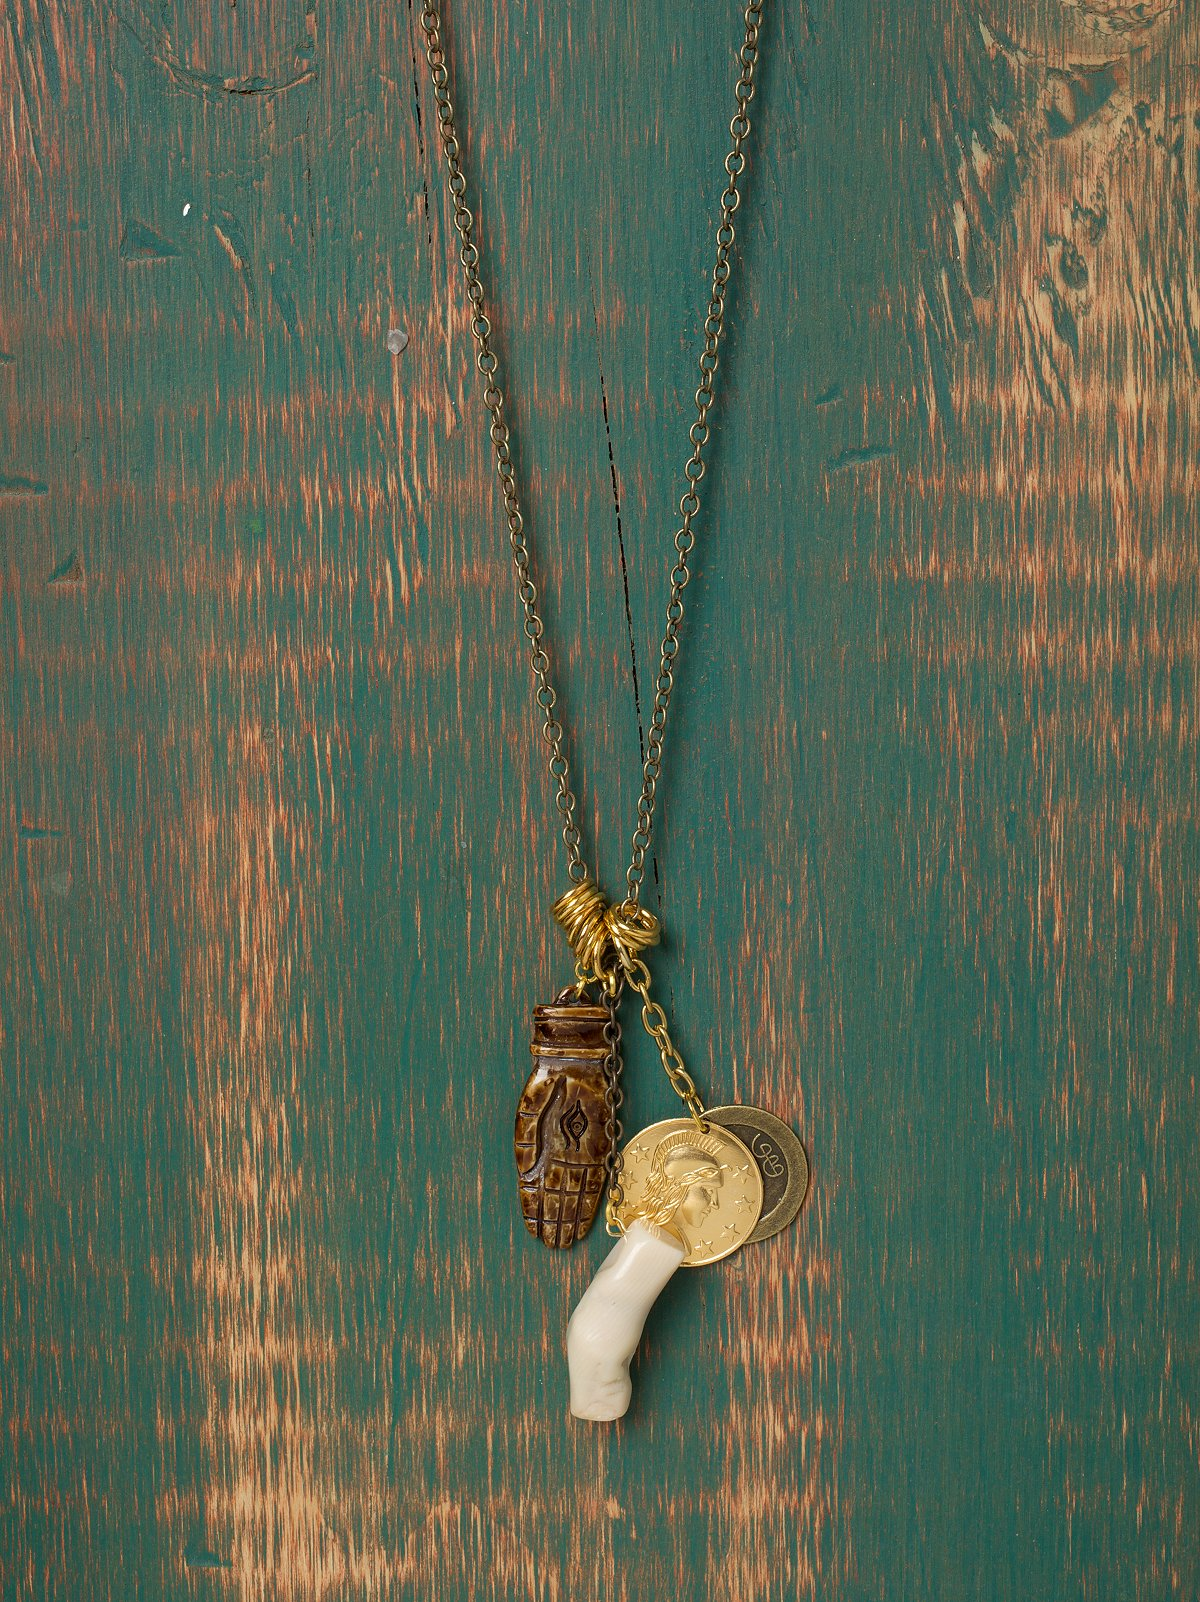 Wood Hand & Coin Charm Necklace